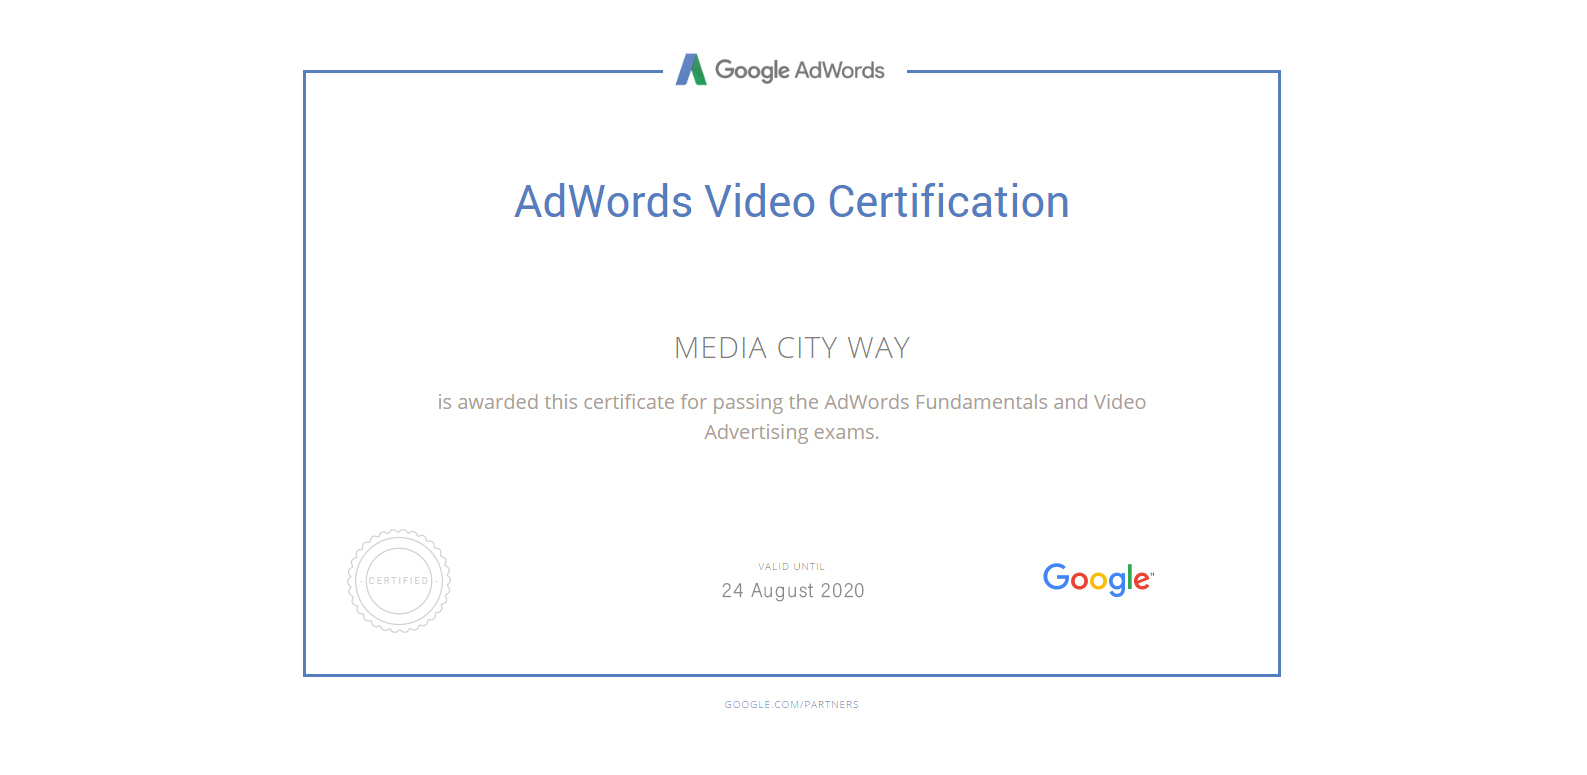 Adwords Video Certificate